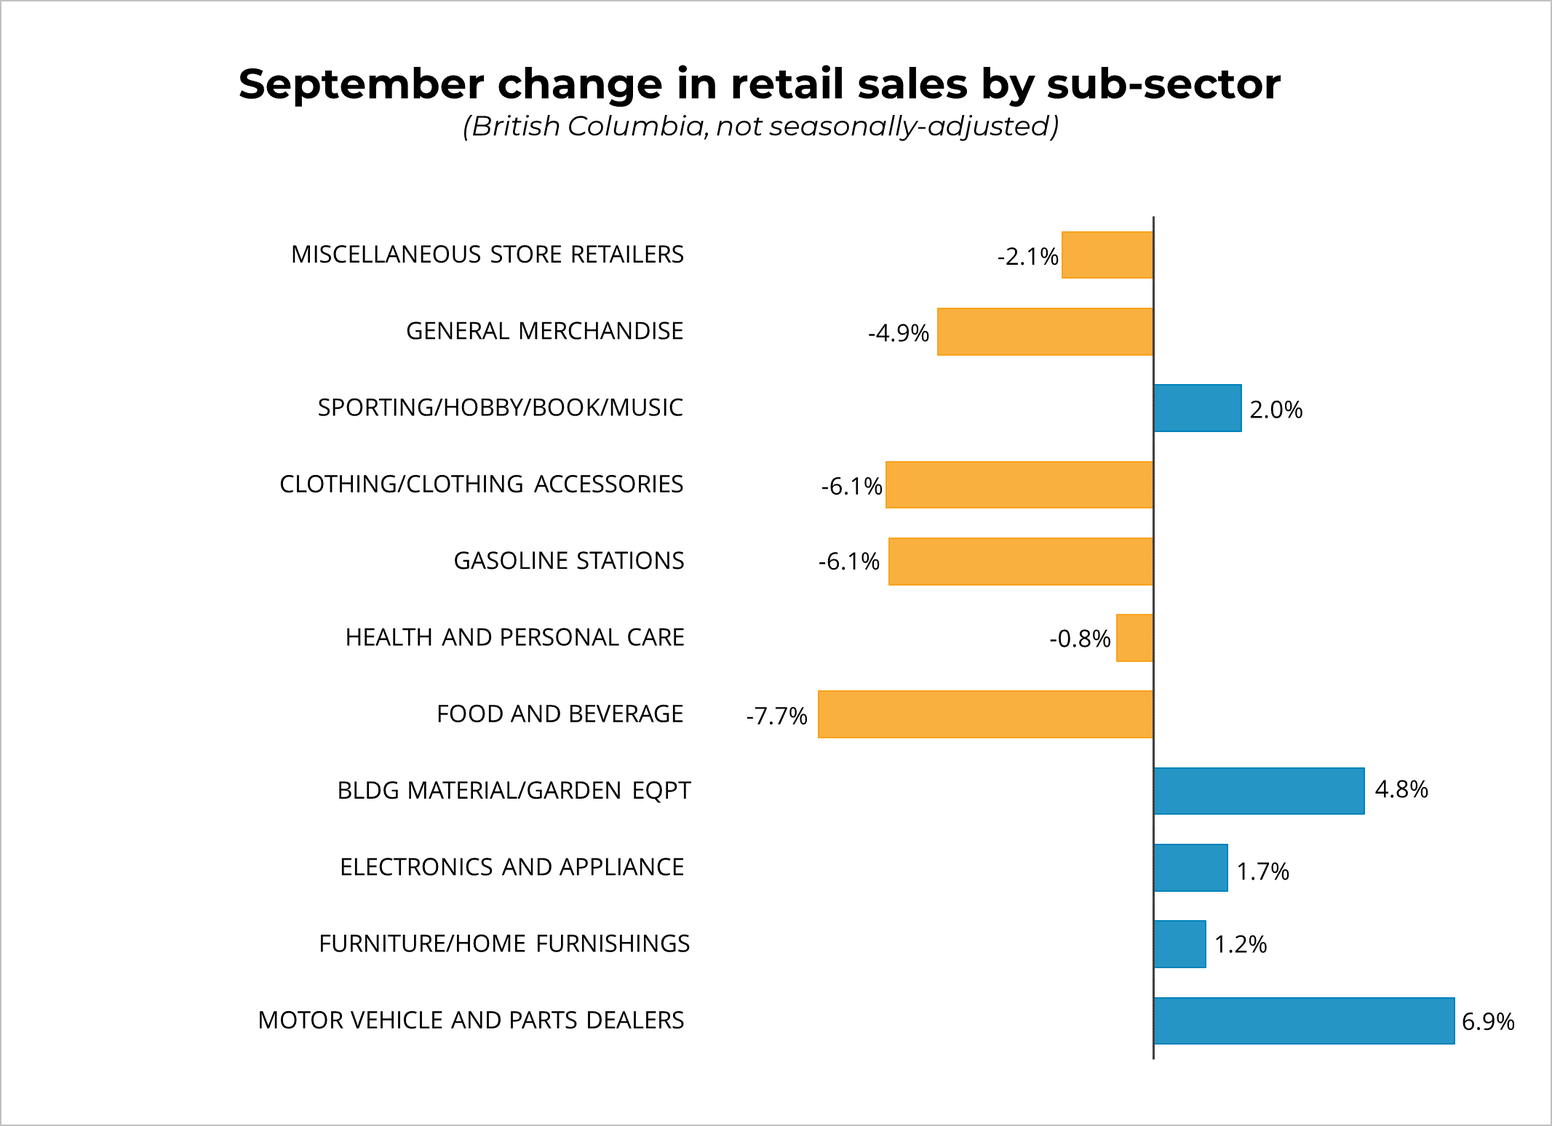 September Change in Retail Sales